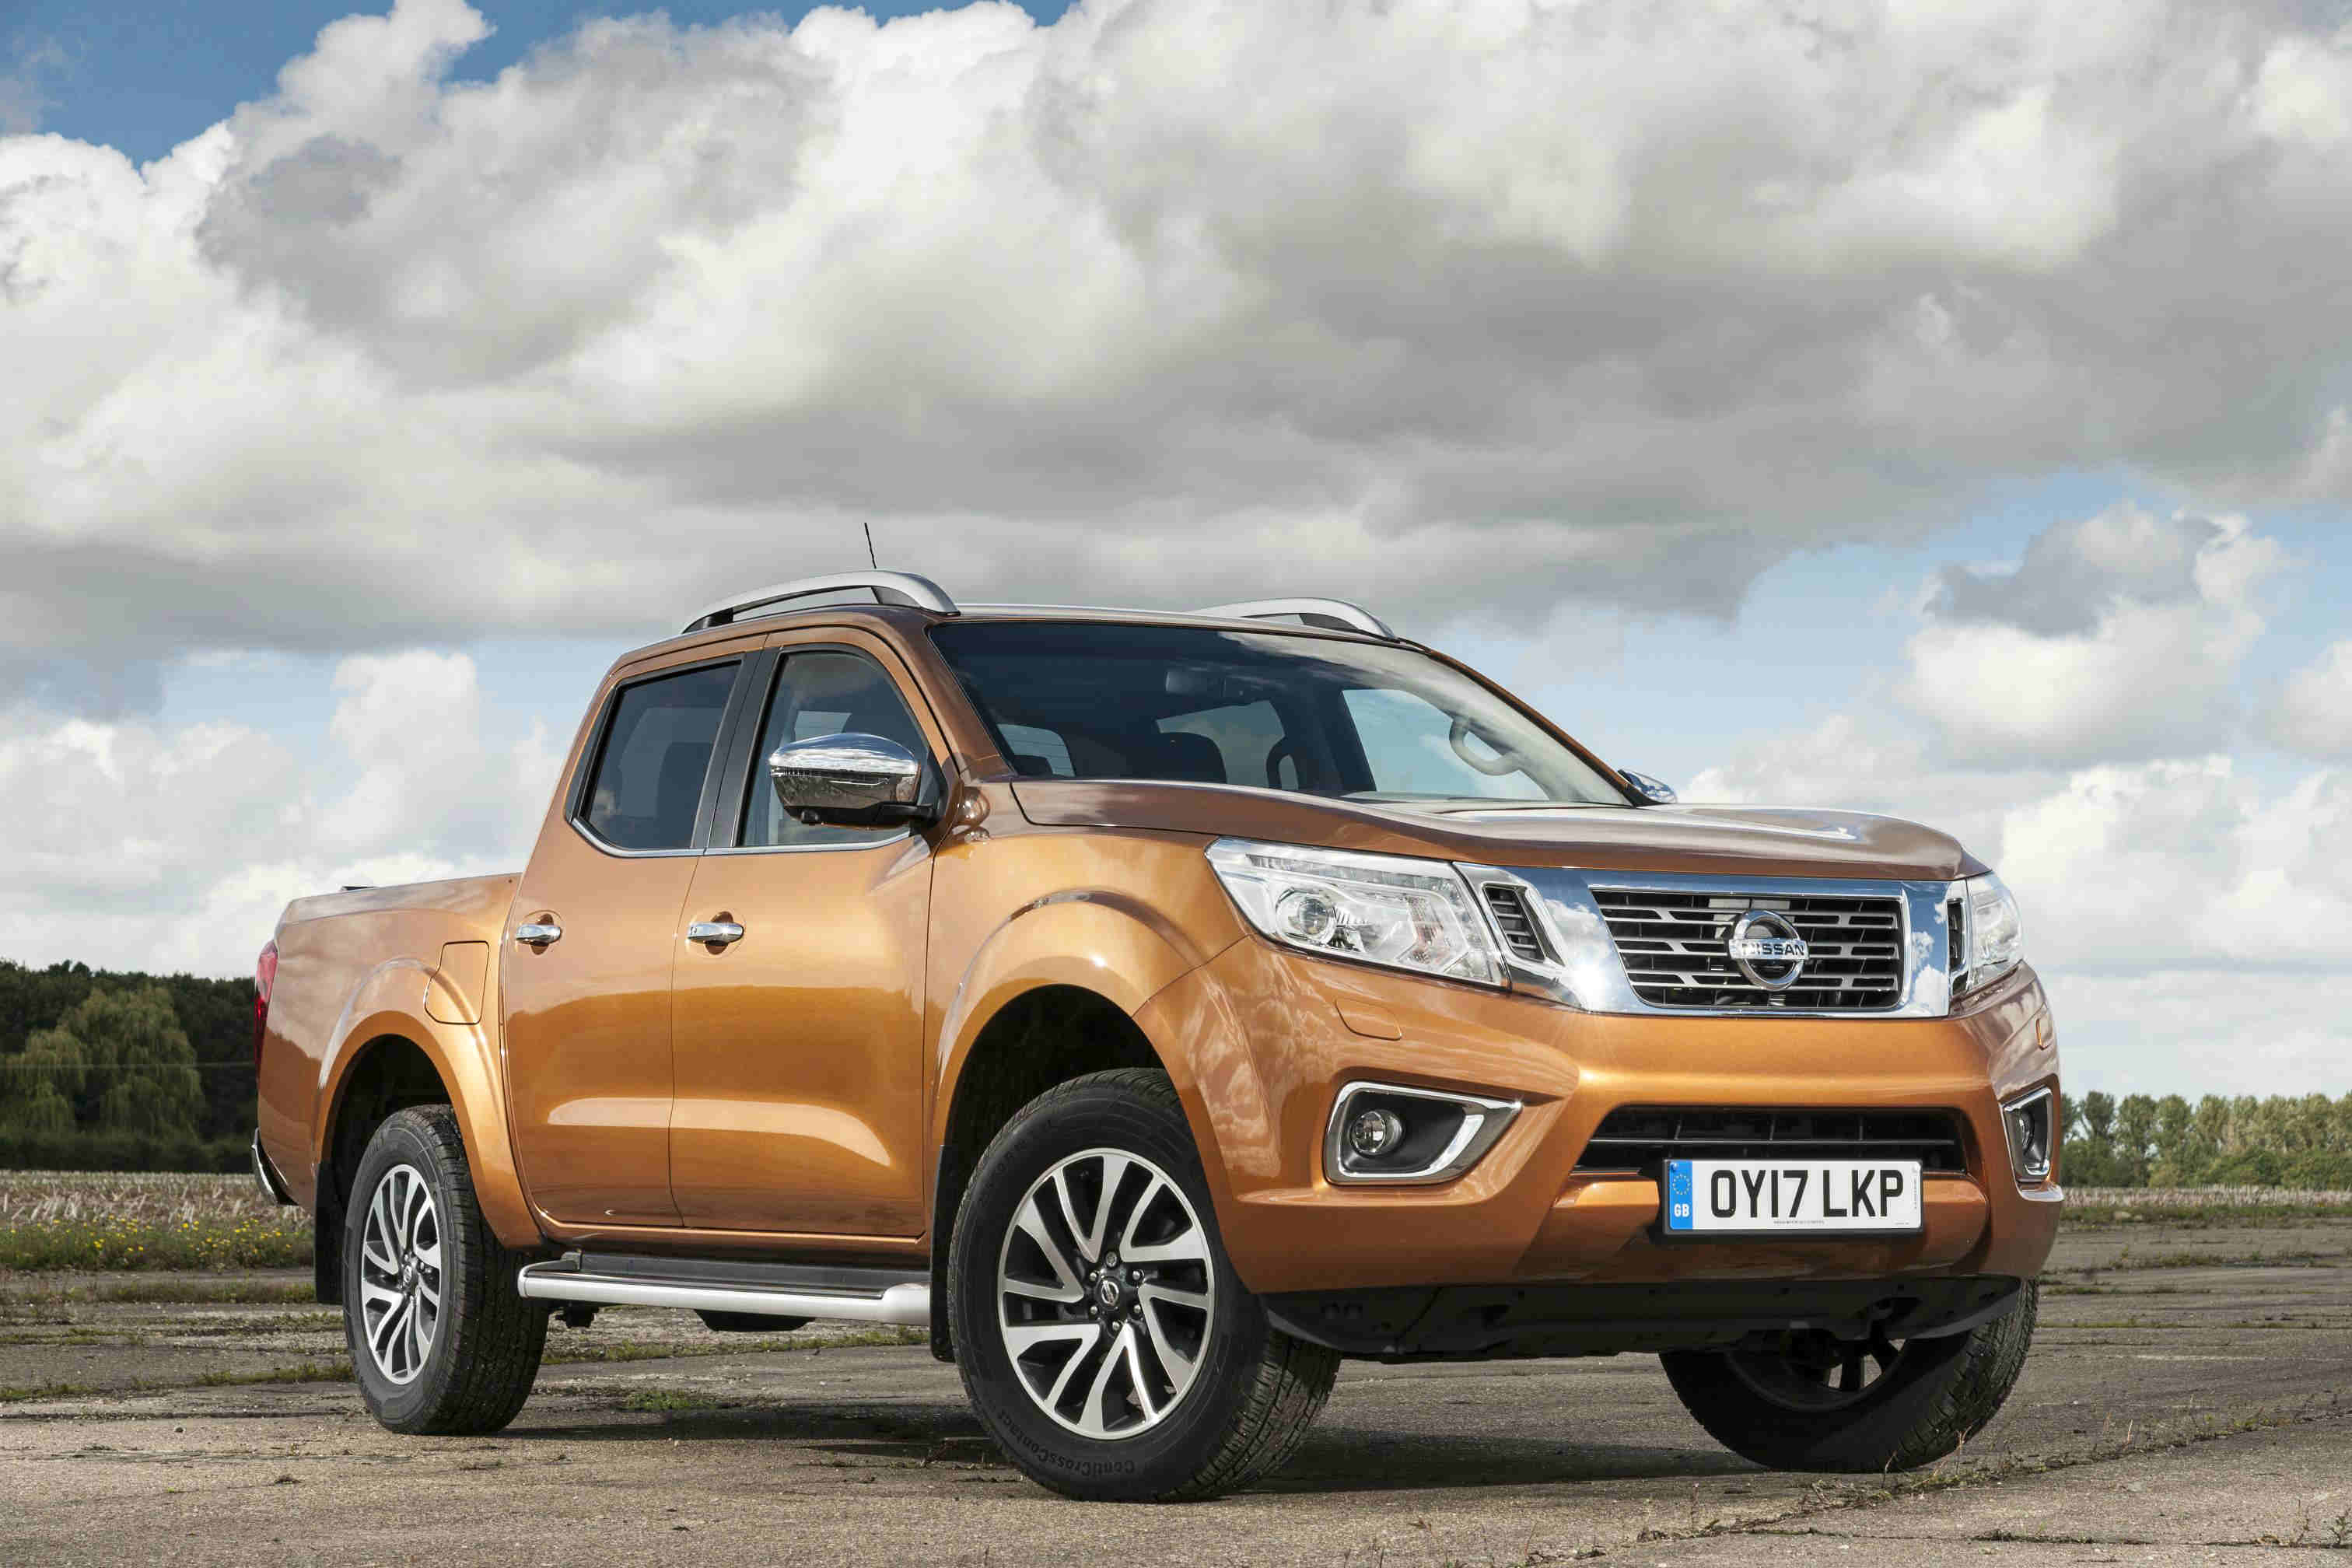 image of an orange nissan navara car exterior